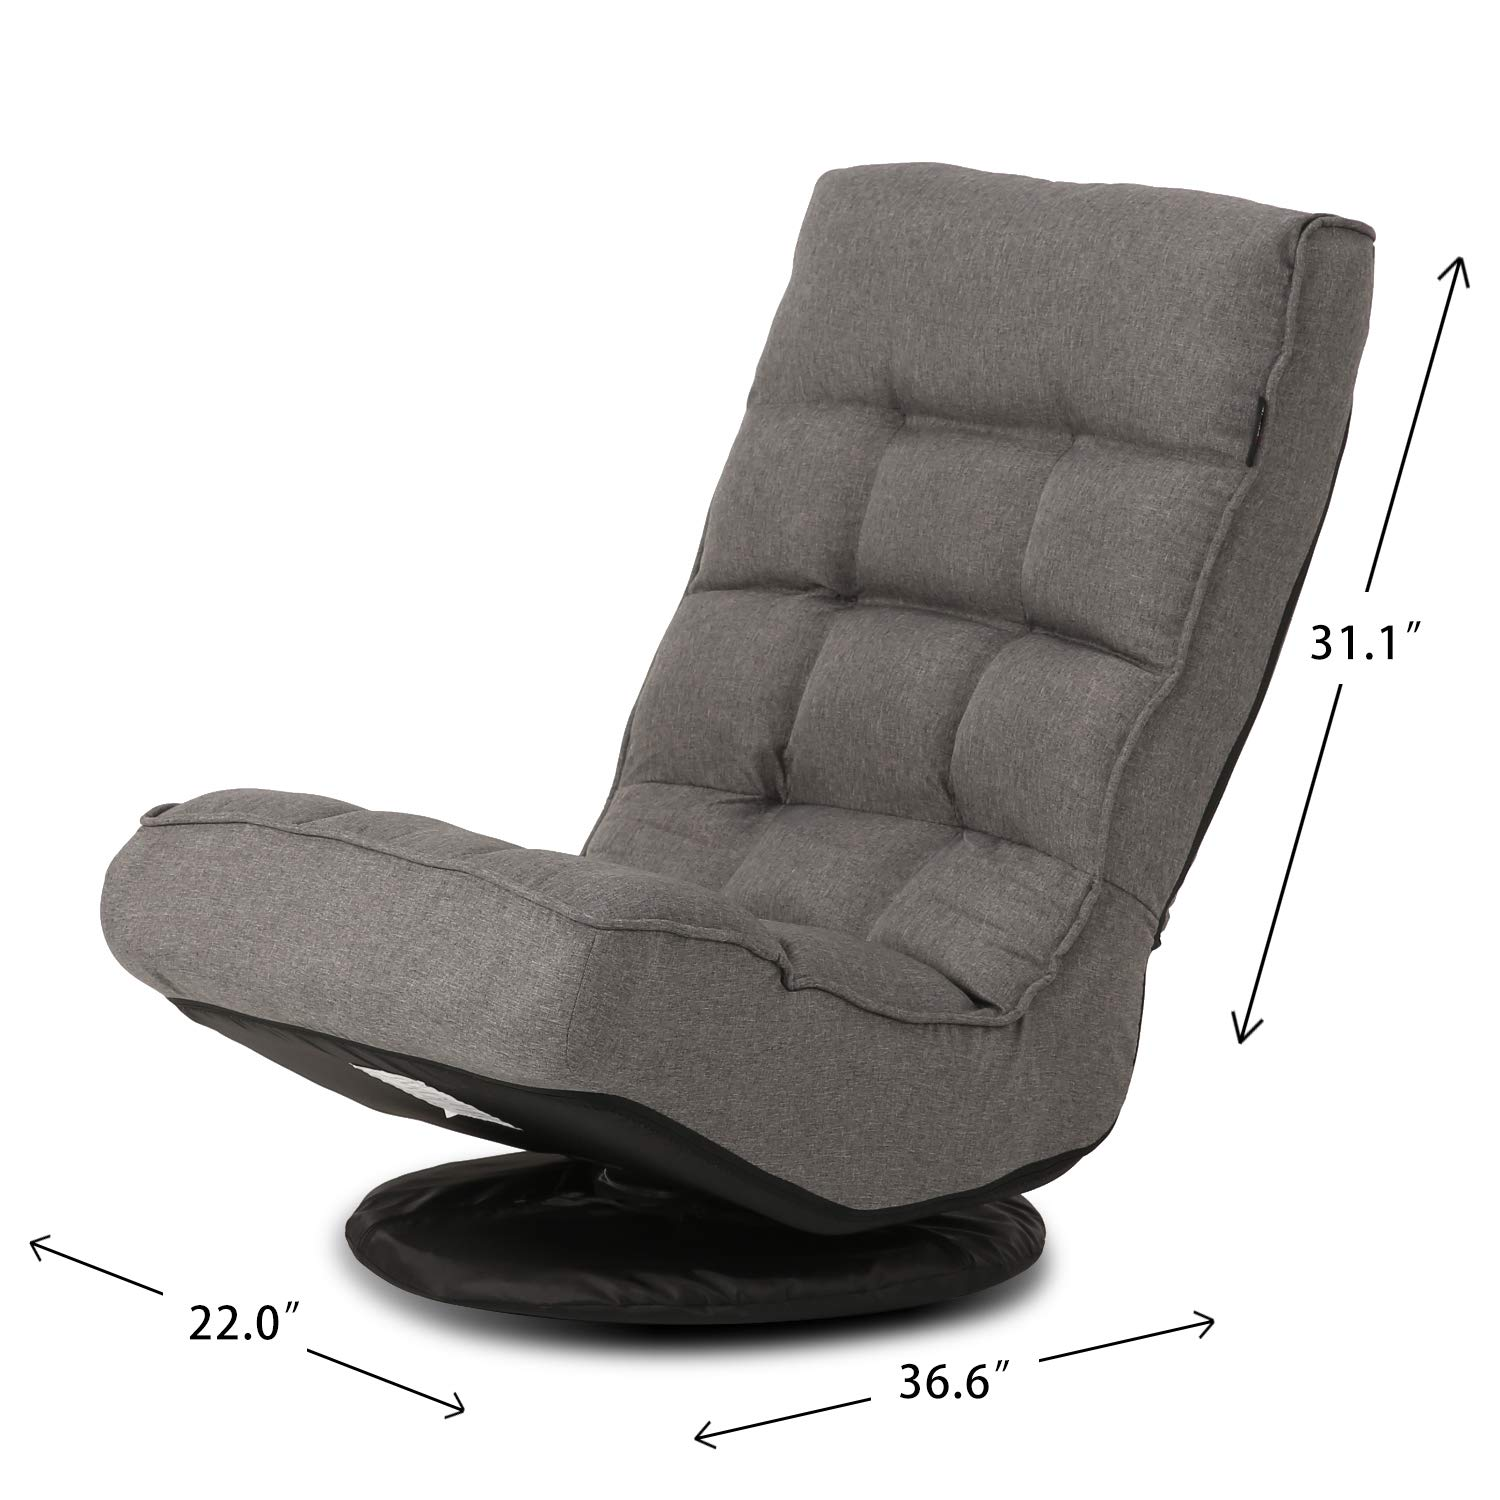 Altrobene Big /& Tall Floor Gaming Chair Rocker//Soft Padded 5-Position Adjustable//Foldable//Great for Watching TV or Gaming//Blue